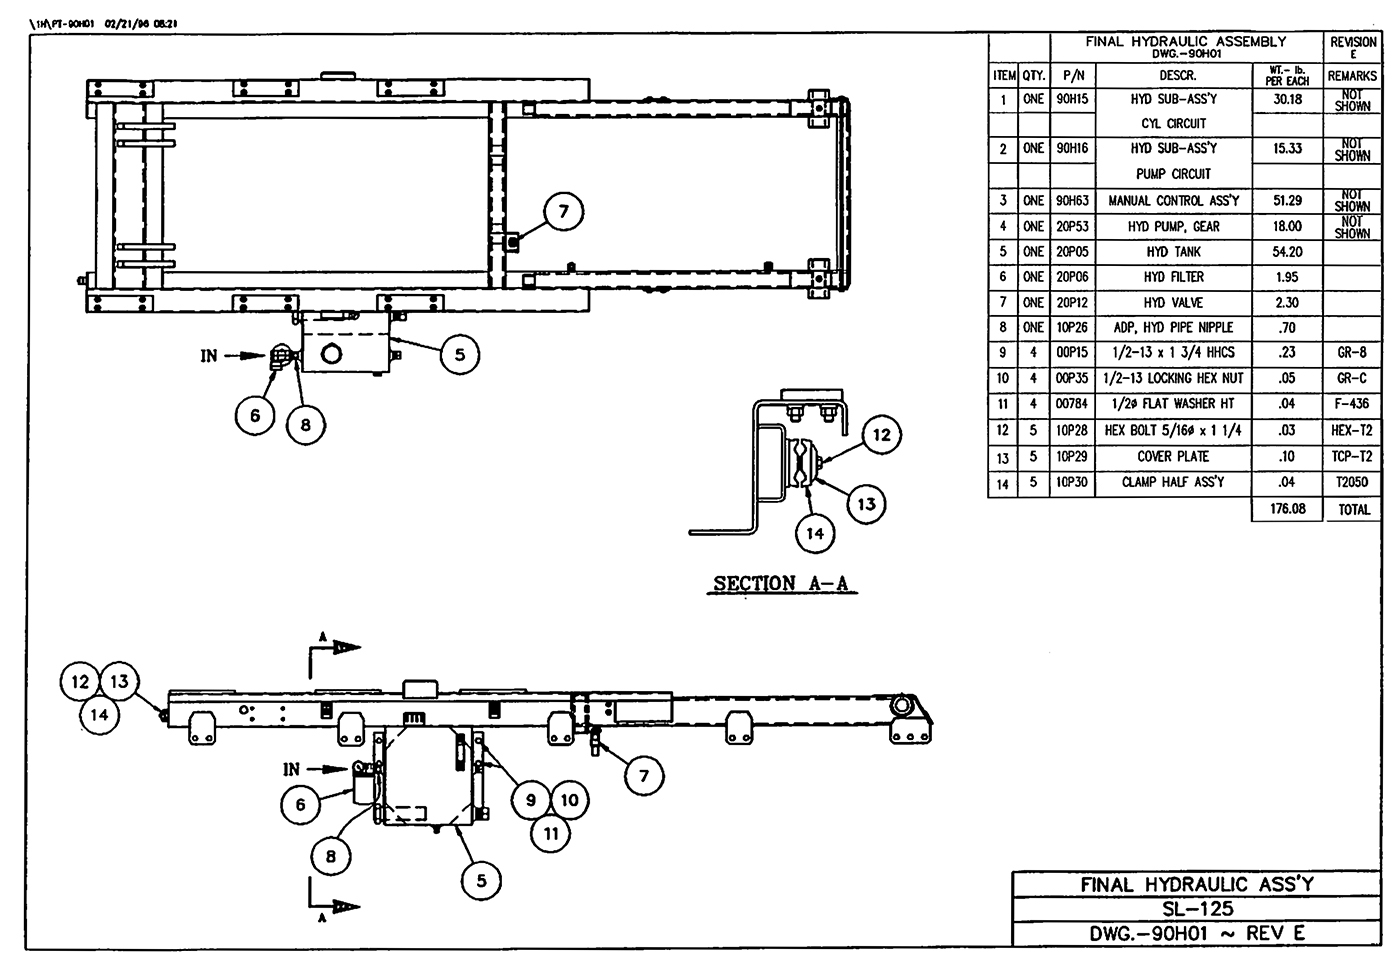 SL-125 Final Hydraulic Assembly Diagram